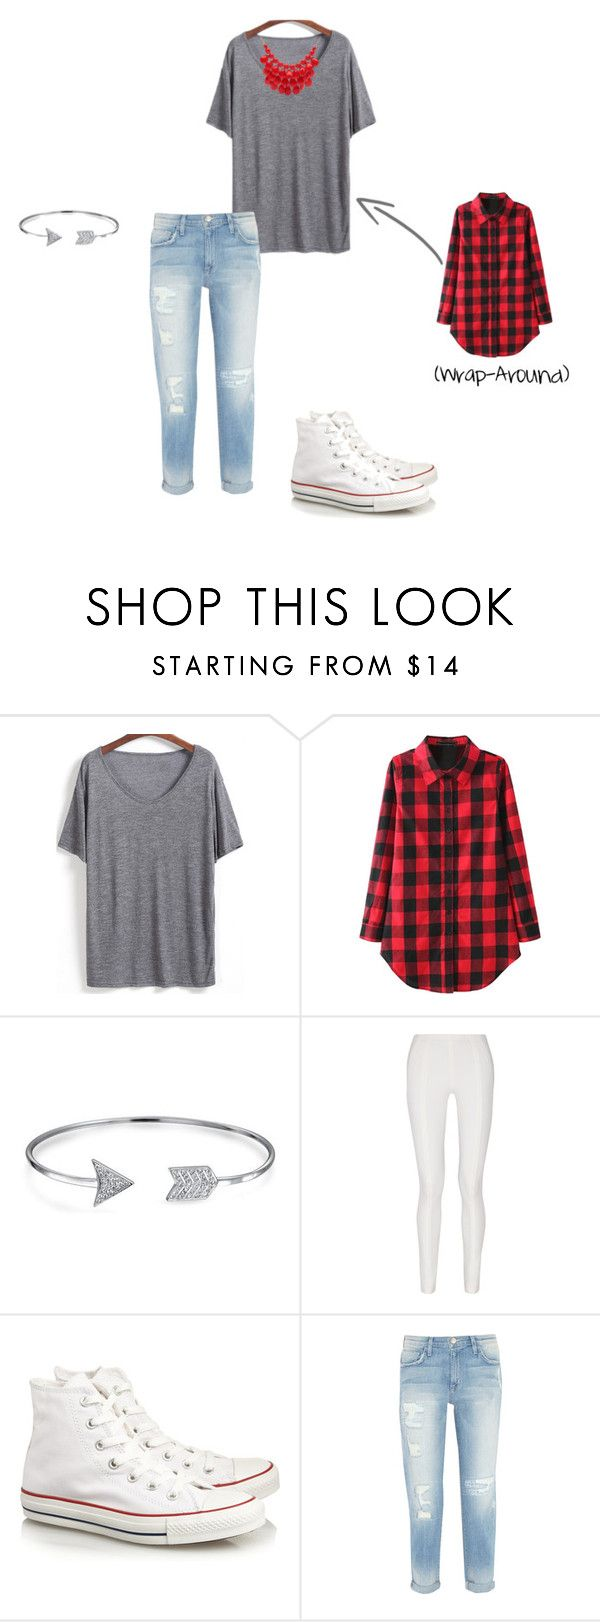 """""""Modern Red"""" by sketchedbyj ❤ liked on Polyvore featuring Bling Jewelry, Donna Karan, Converse, Current/Elliott, Alexa Starr and modern"""